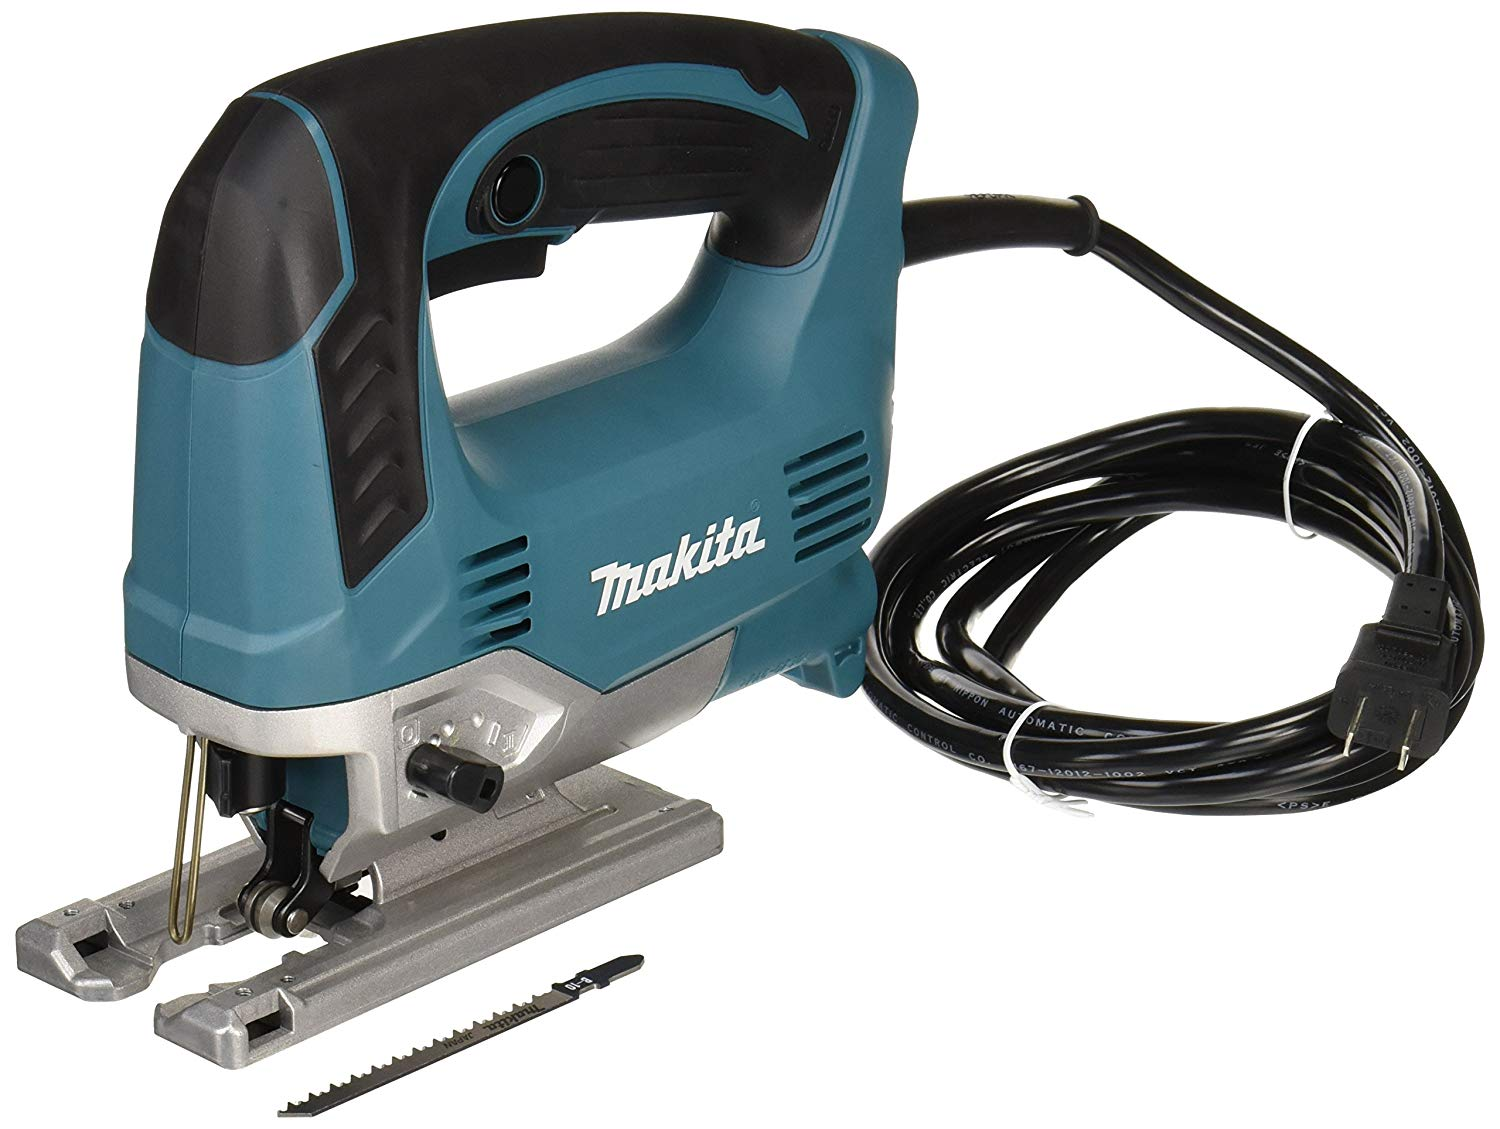 Makita Top Handle JigSaw